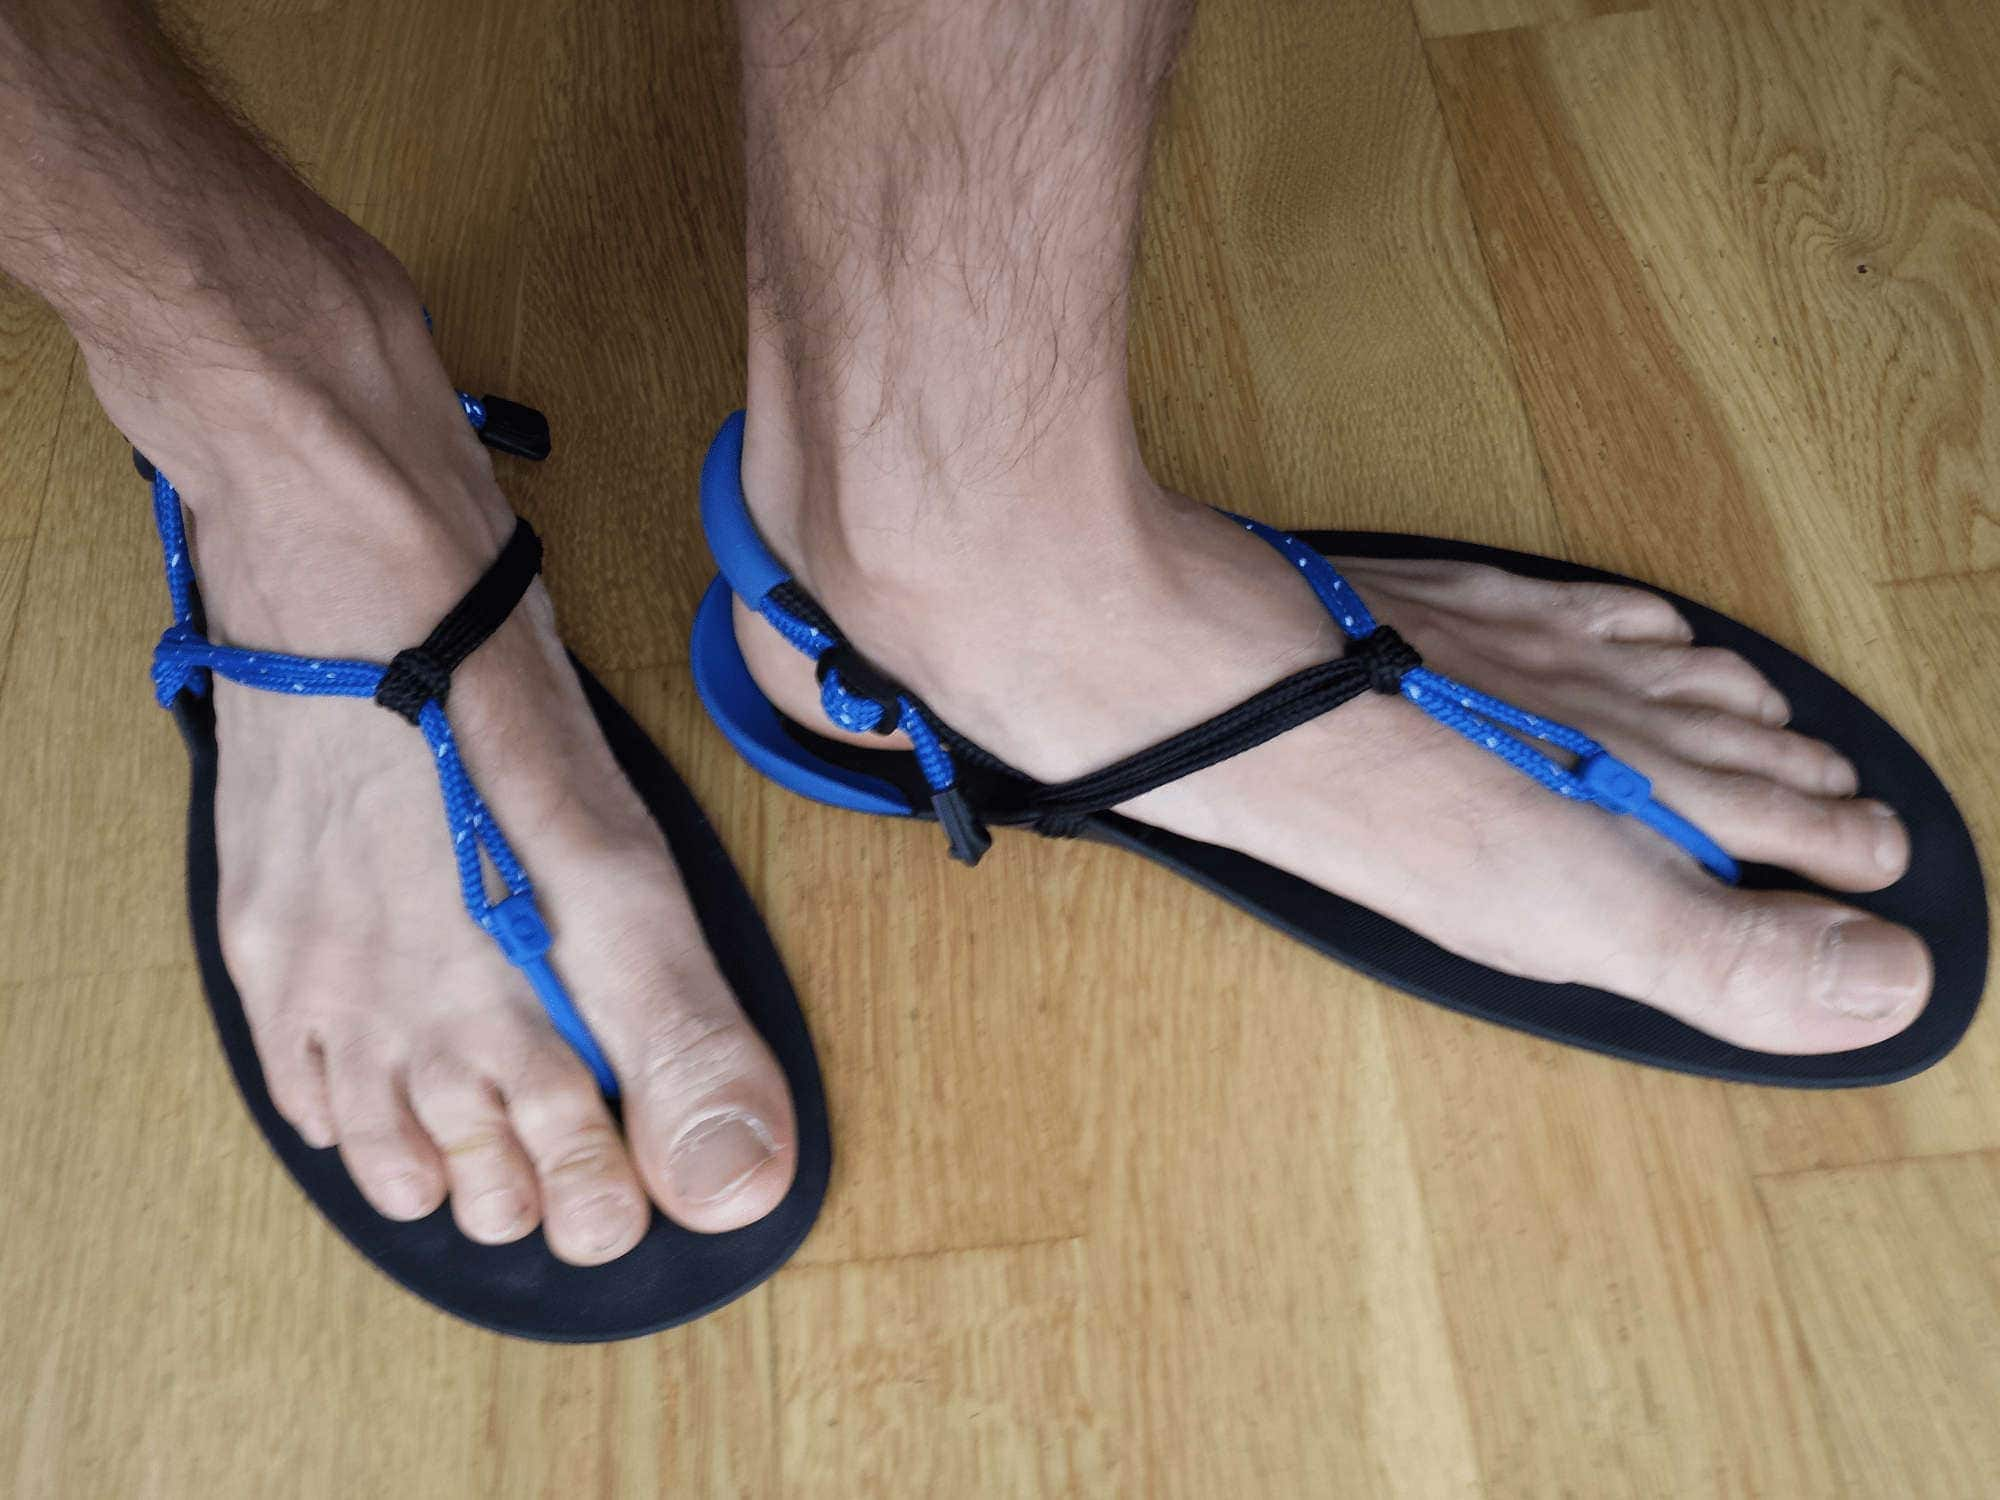 f2b25d8aceca Huaraches Sandals  First 3 Miles in Running Sandals -  FixWillpower